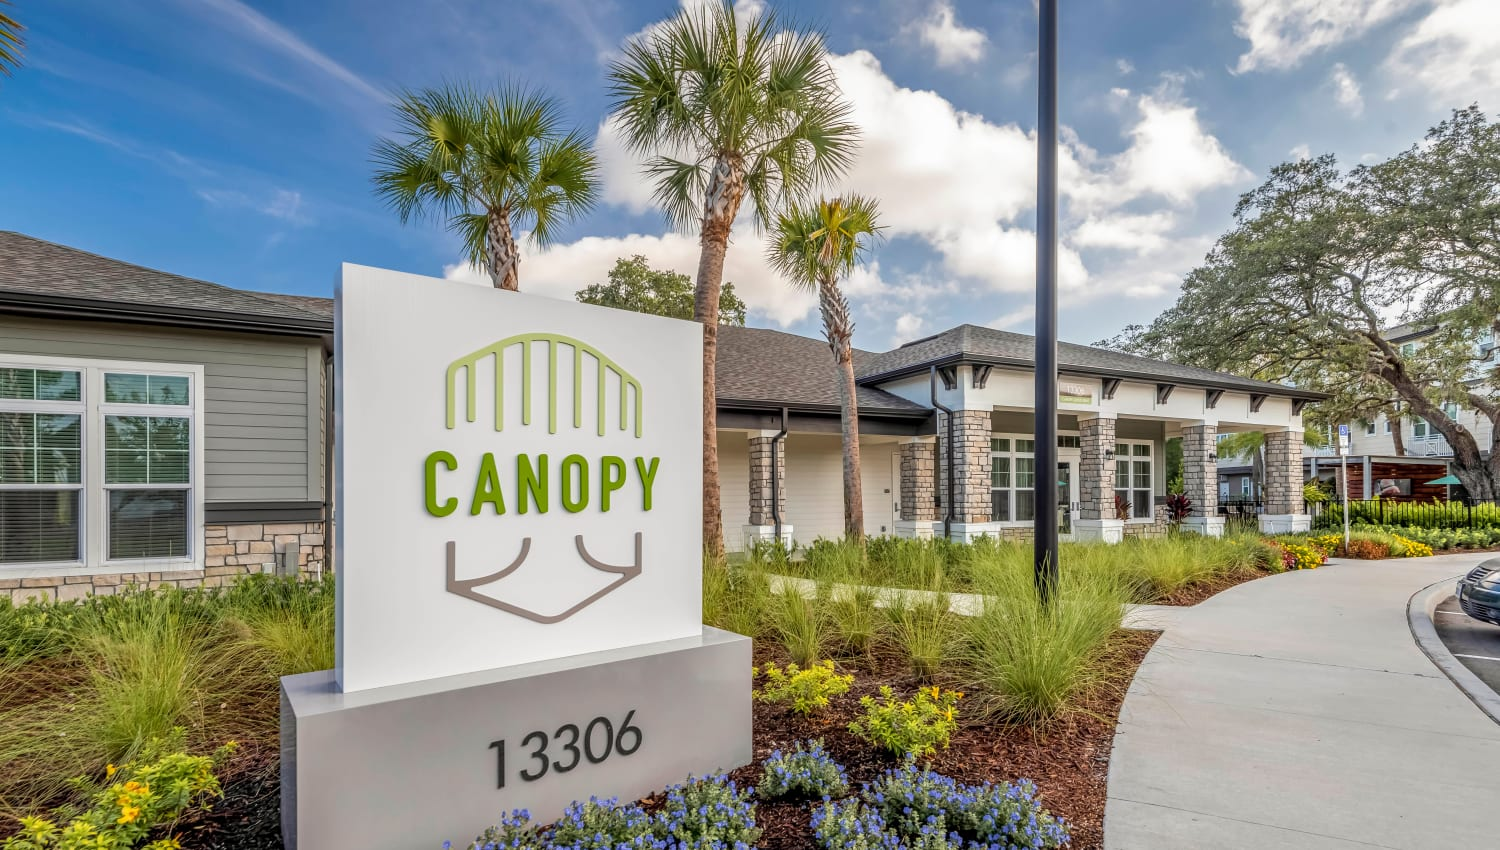 Our monument sign welcoming residents and guests to Canopy at Citrus Park in Tampa, Florida